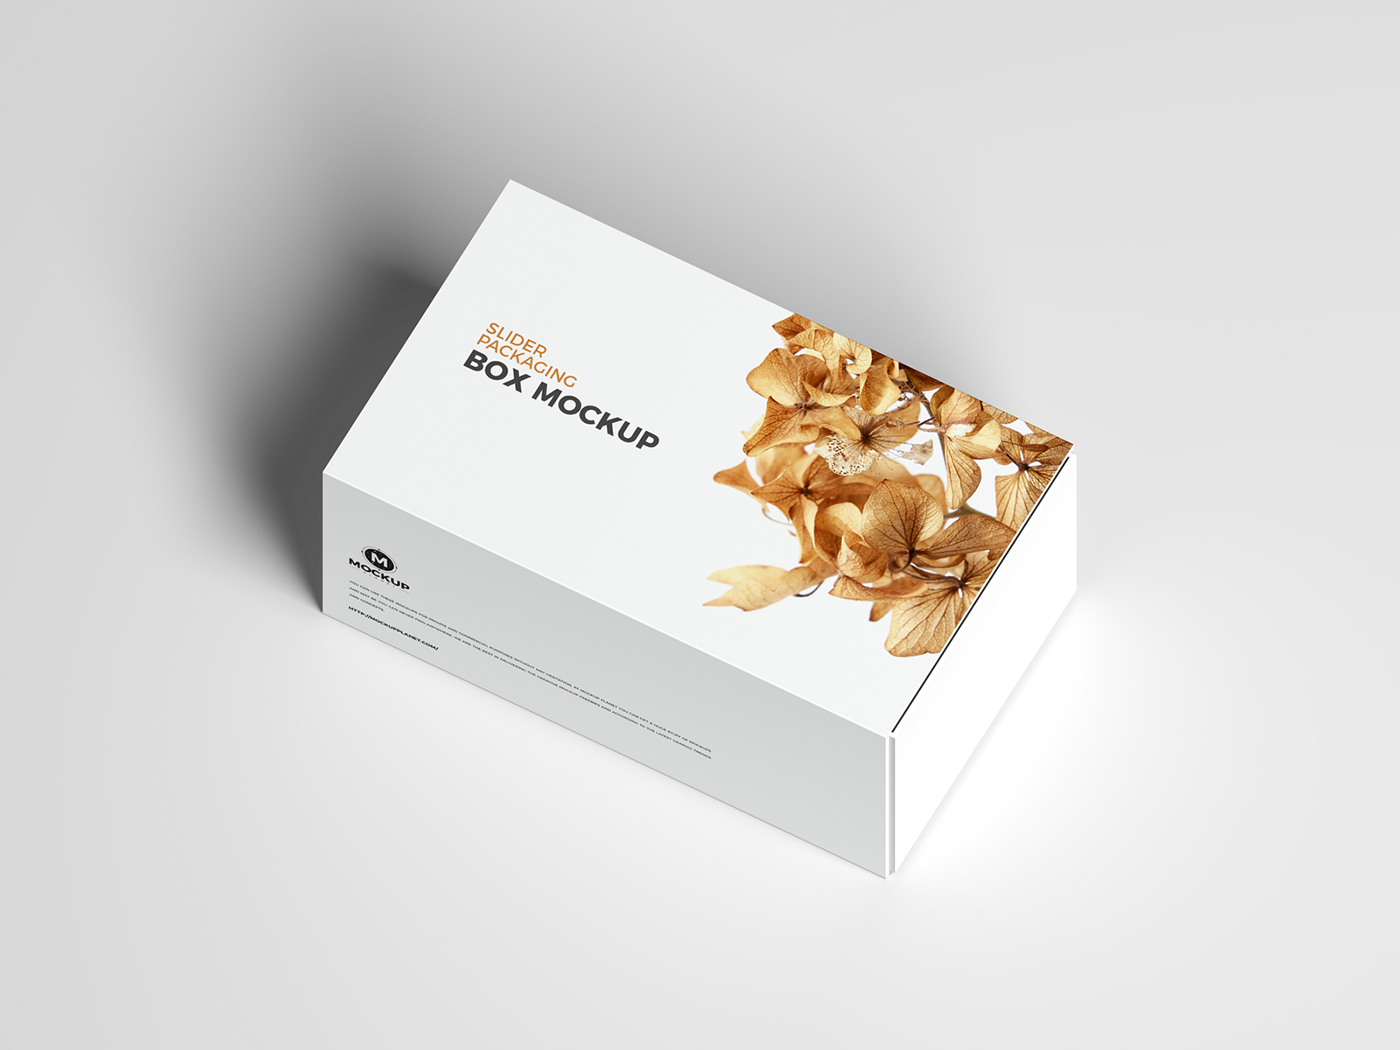 Image may contain: businesscard, box and snack